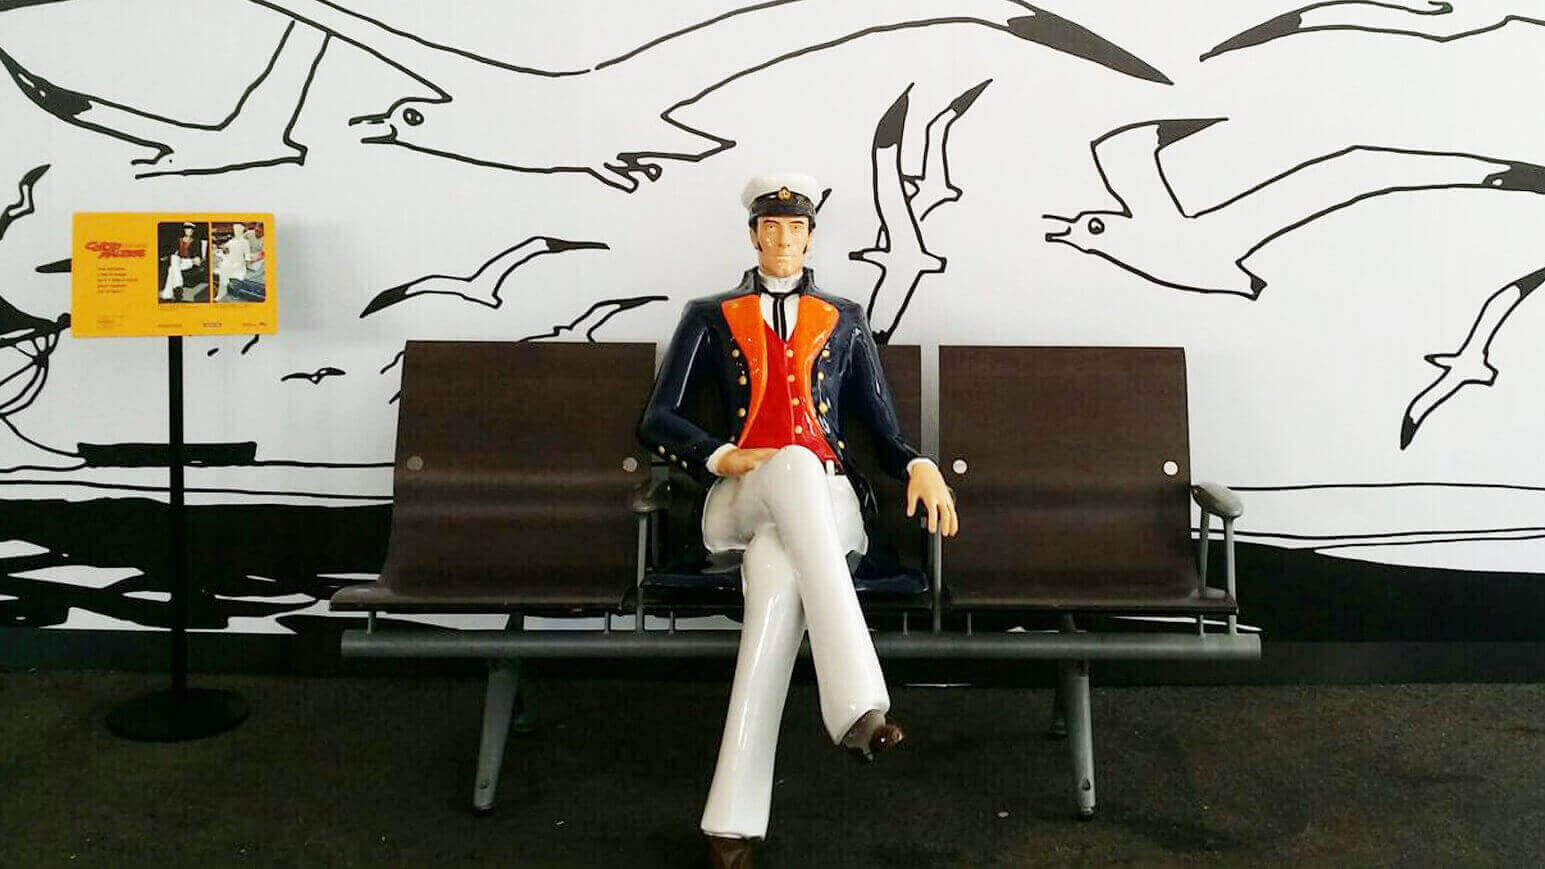 Find a Life-Size 3D Printed Corto Maltese in Paris Train Station   All3DP